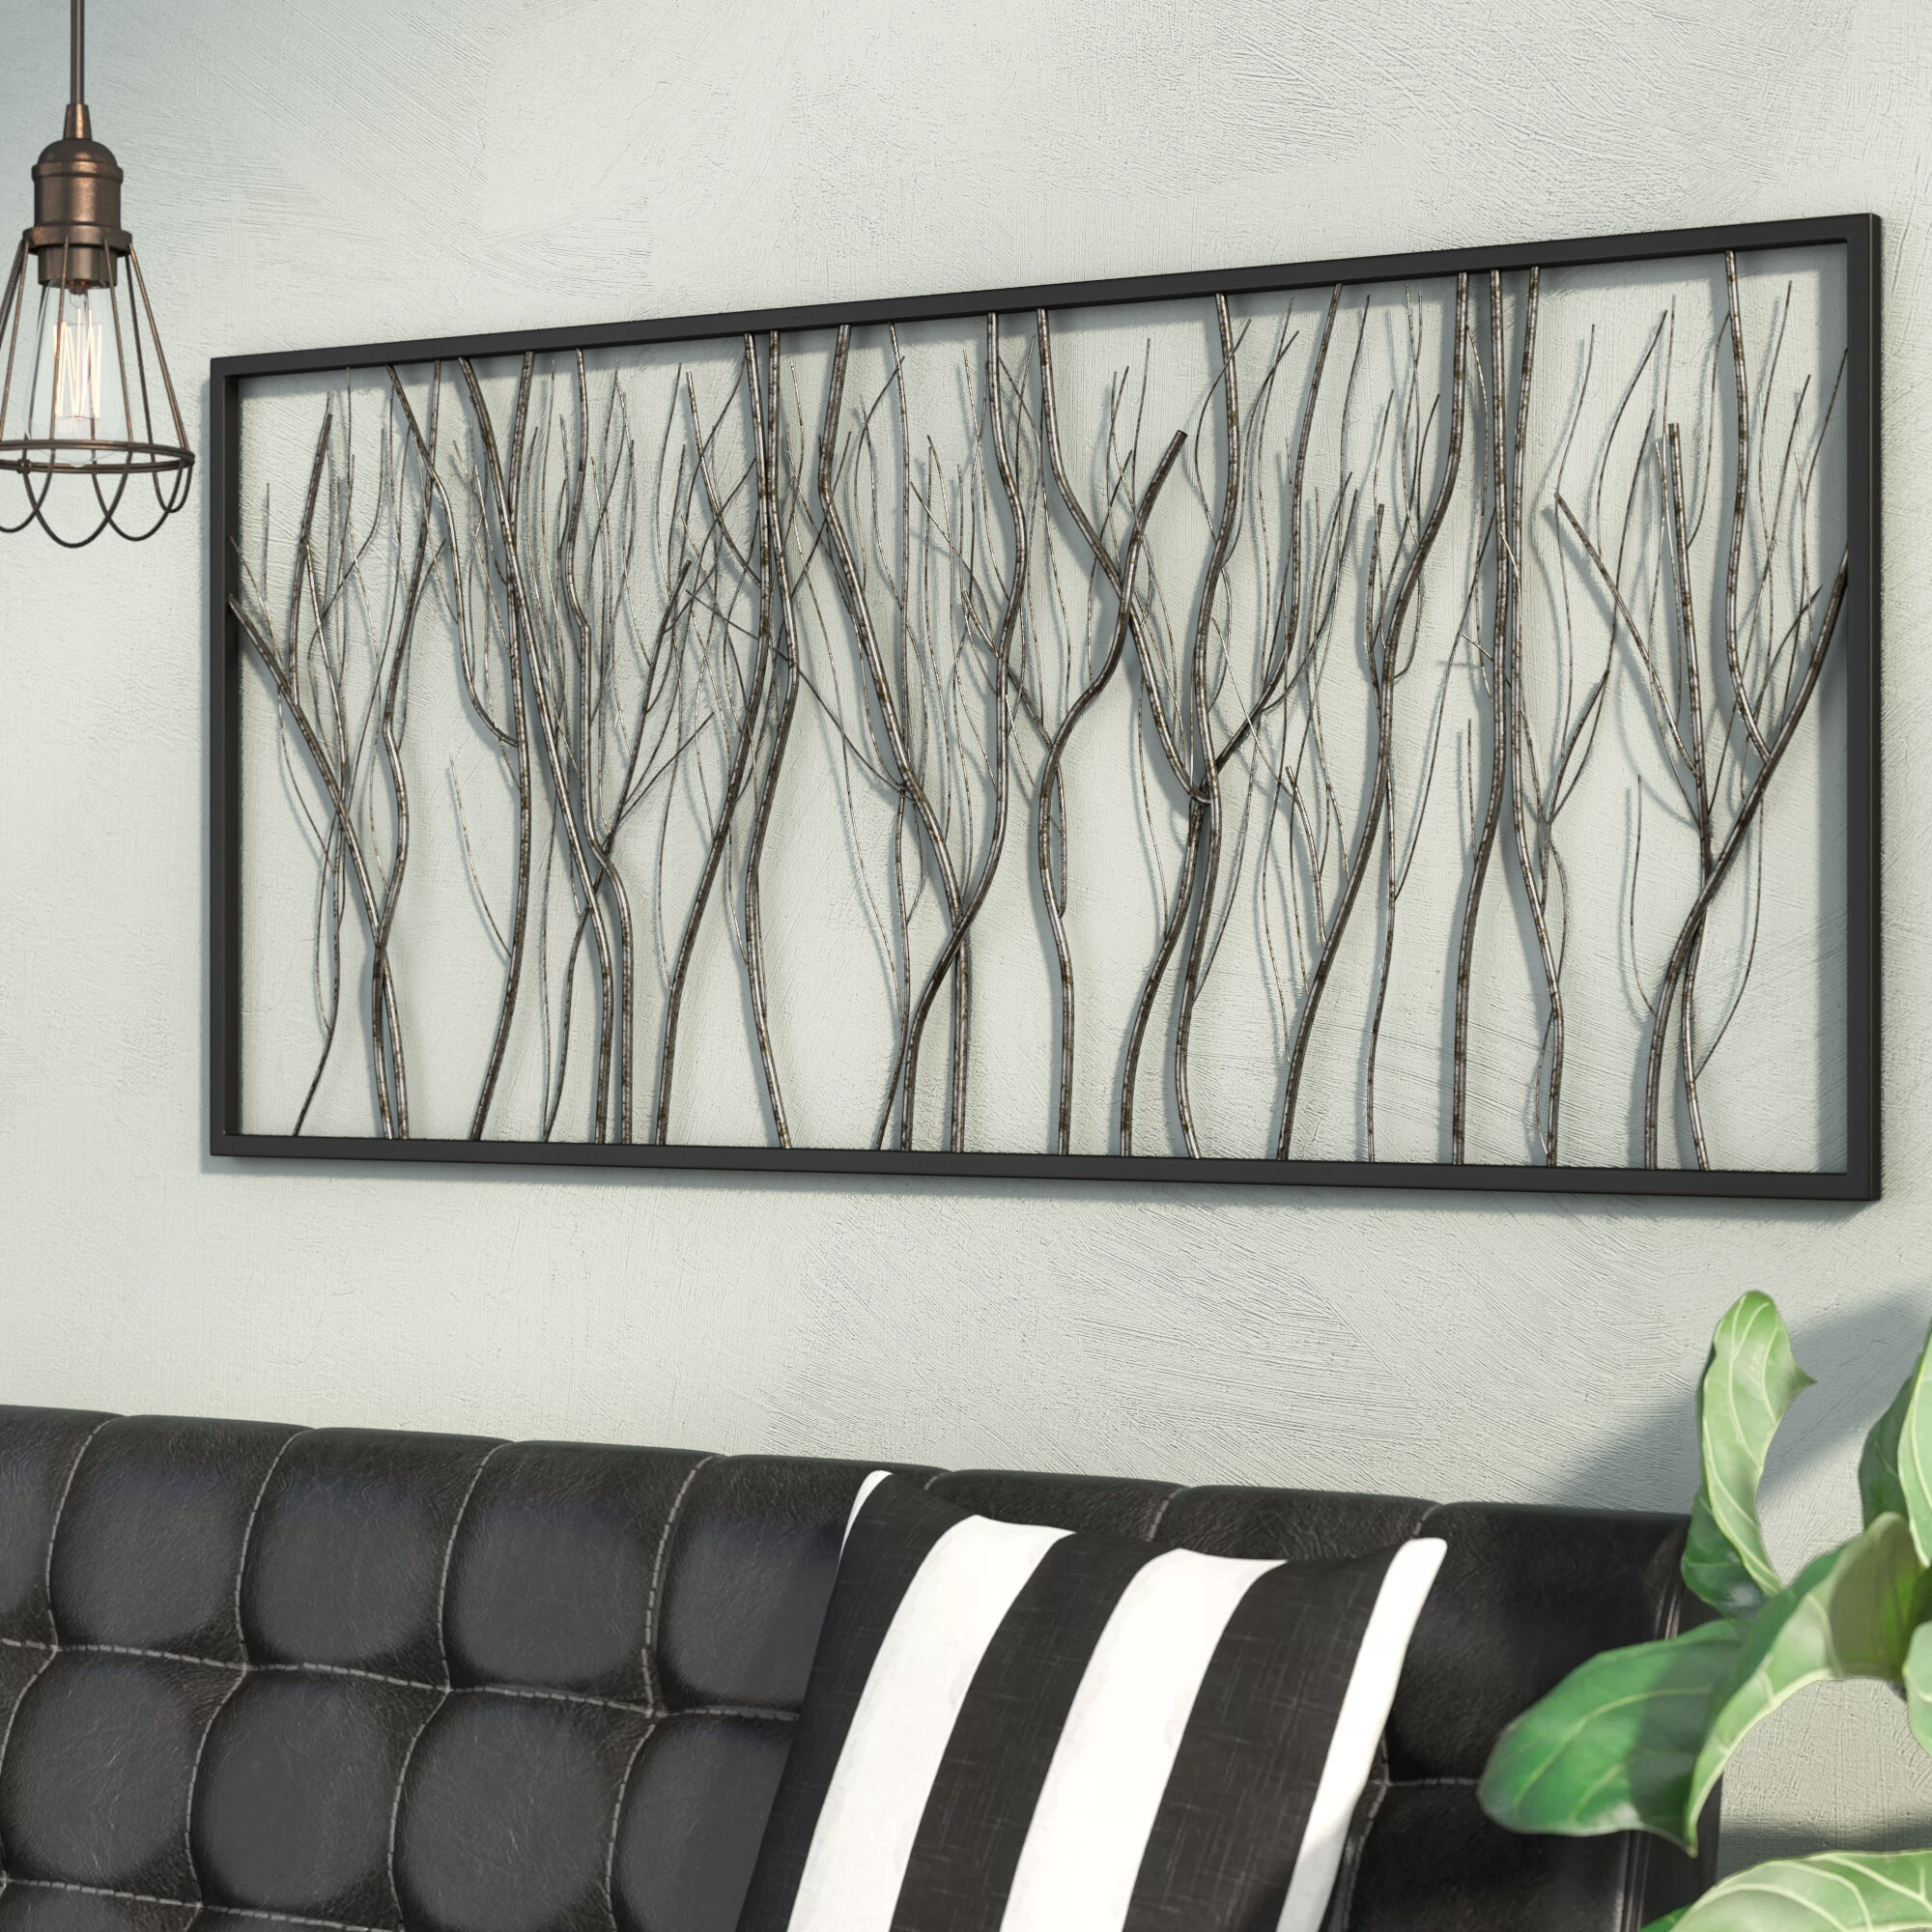 Wayfair   Black Metal Wall Accents You'll Love in 20